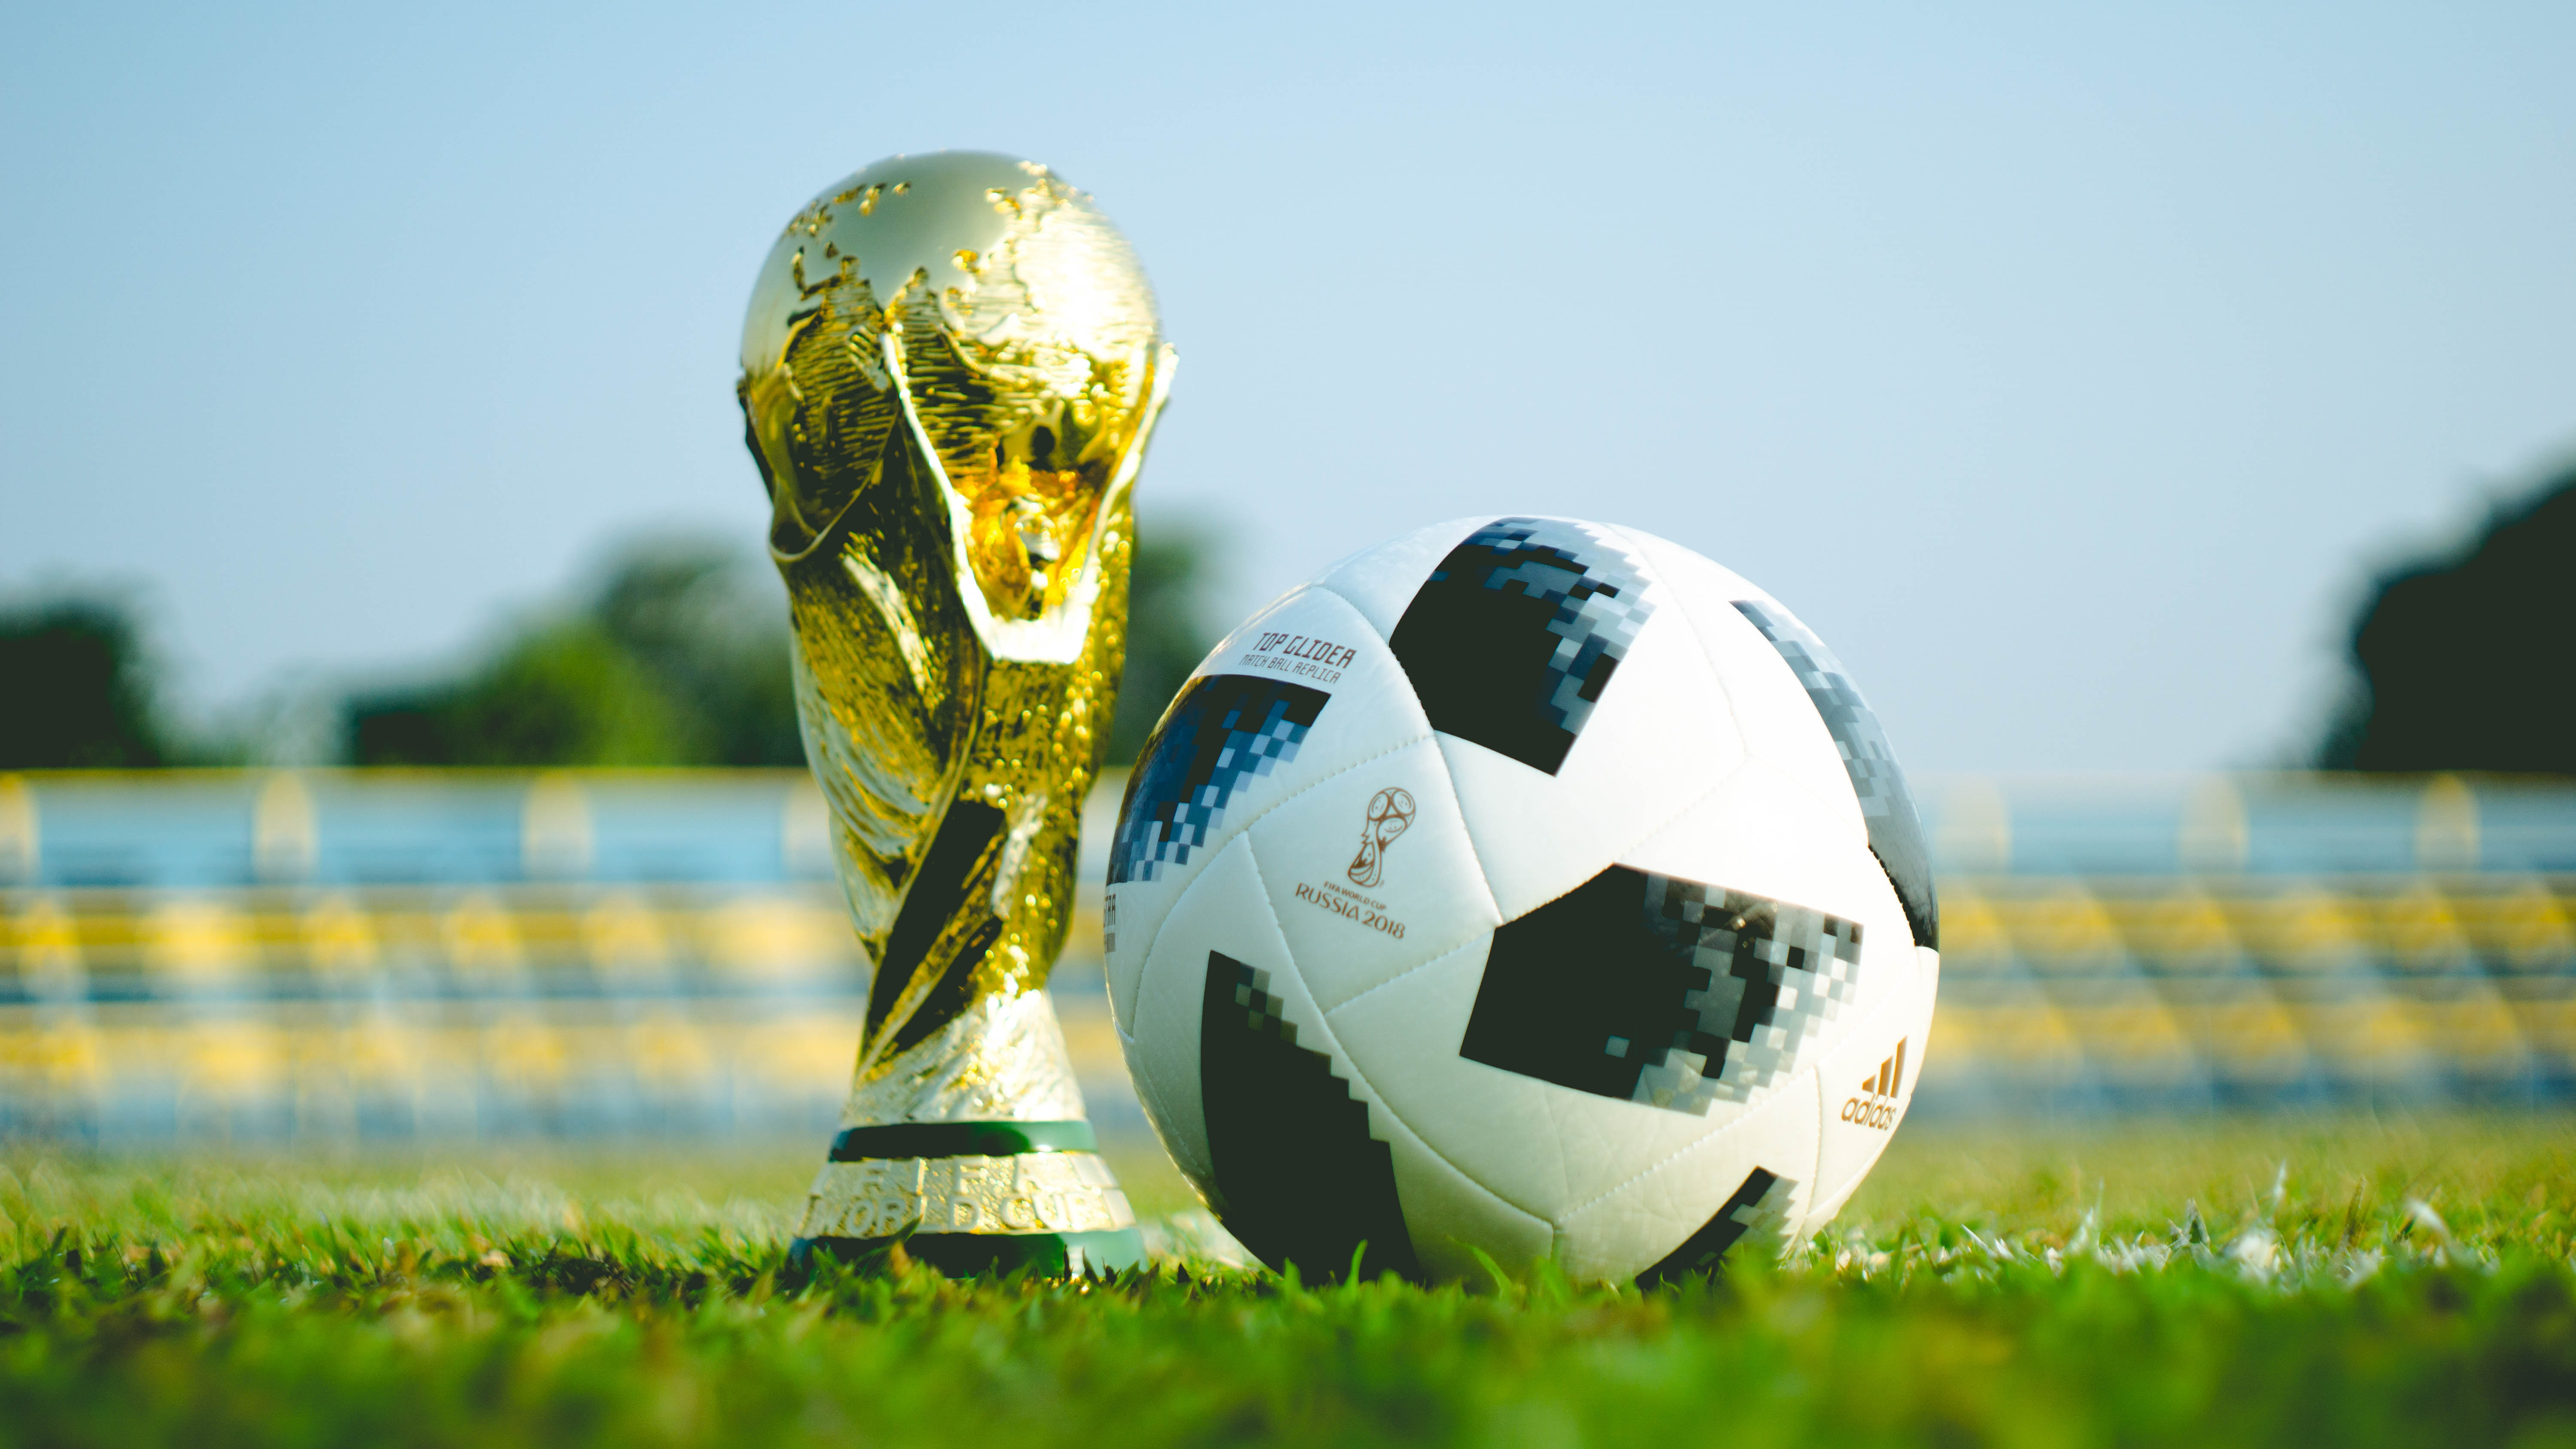 The adidas telstar 18 World Cup ball alongside the Jules Rimet trophy